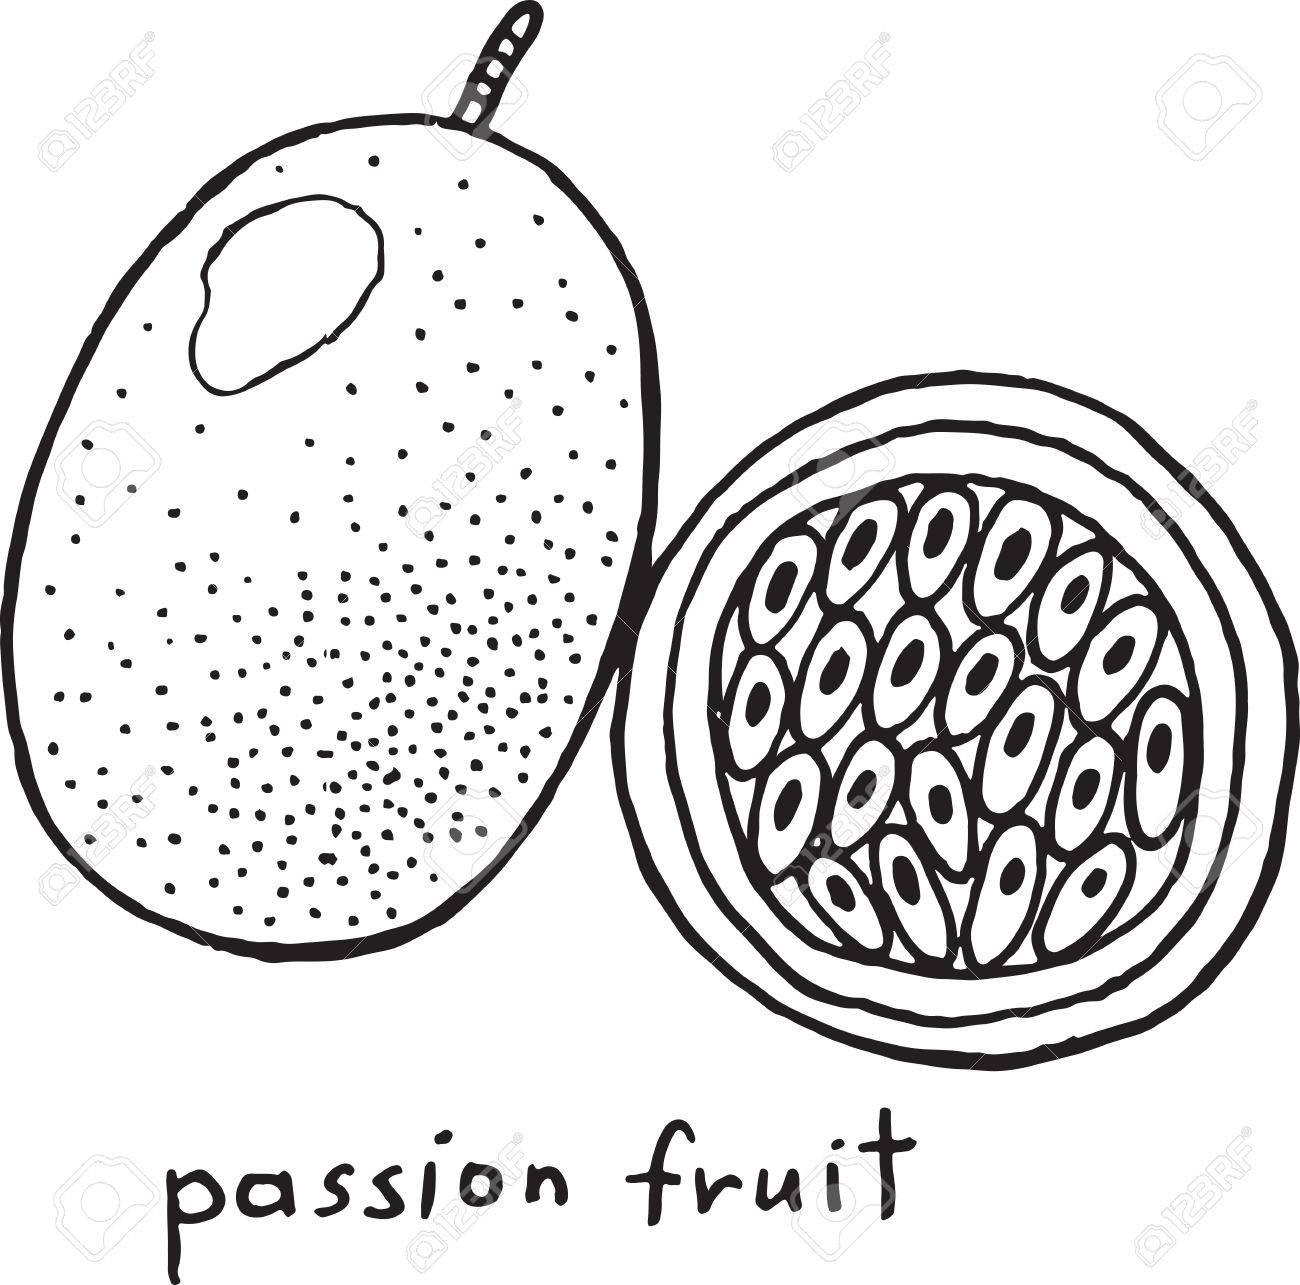 Passion fruit coloring page graphic vector black and white art for coloring books for adults